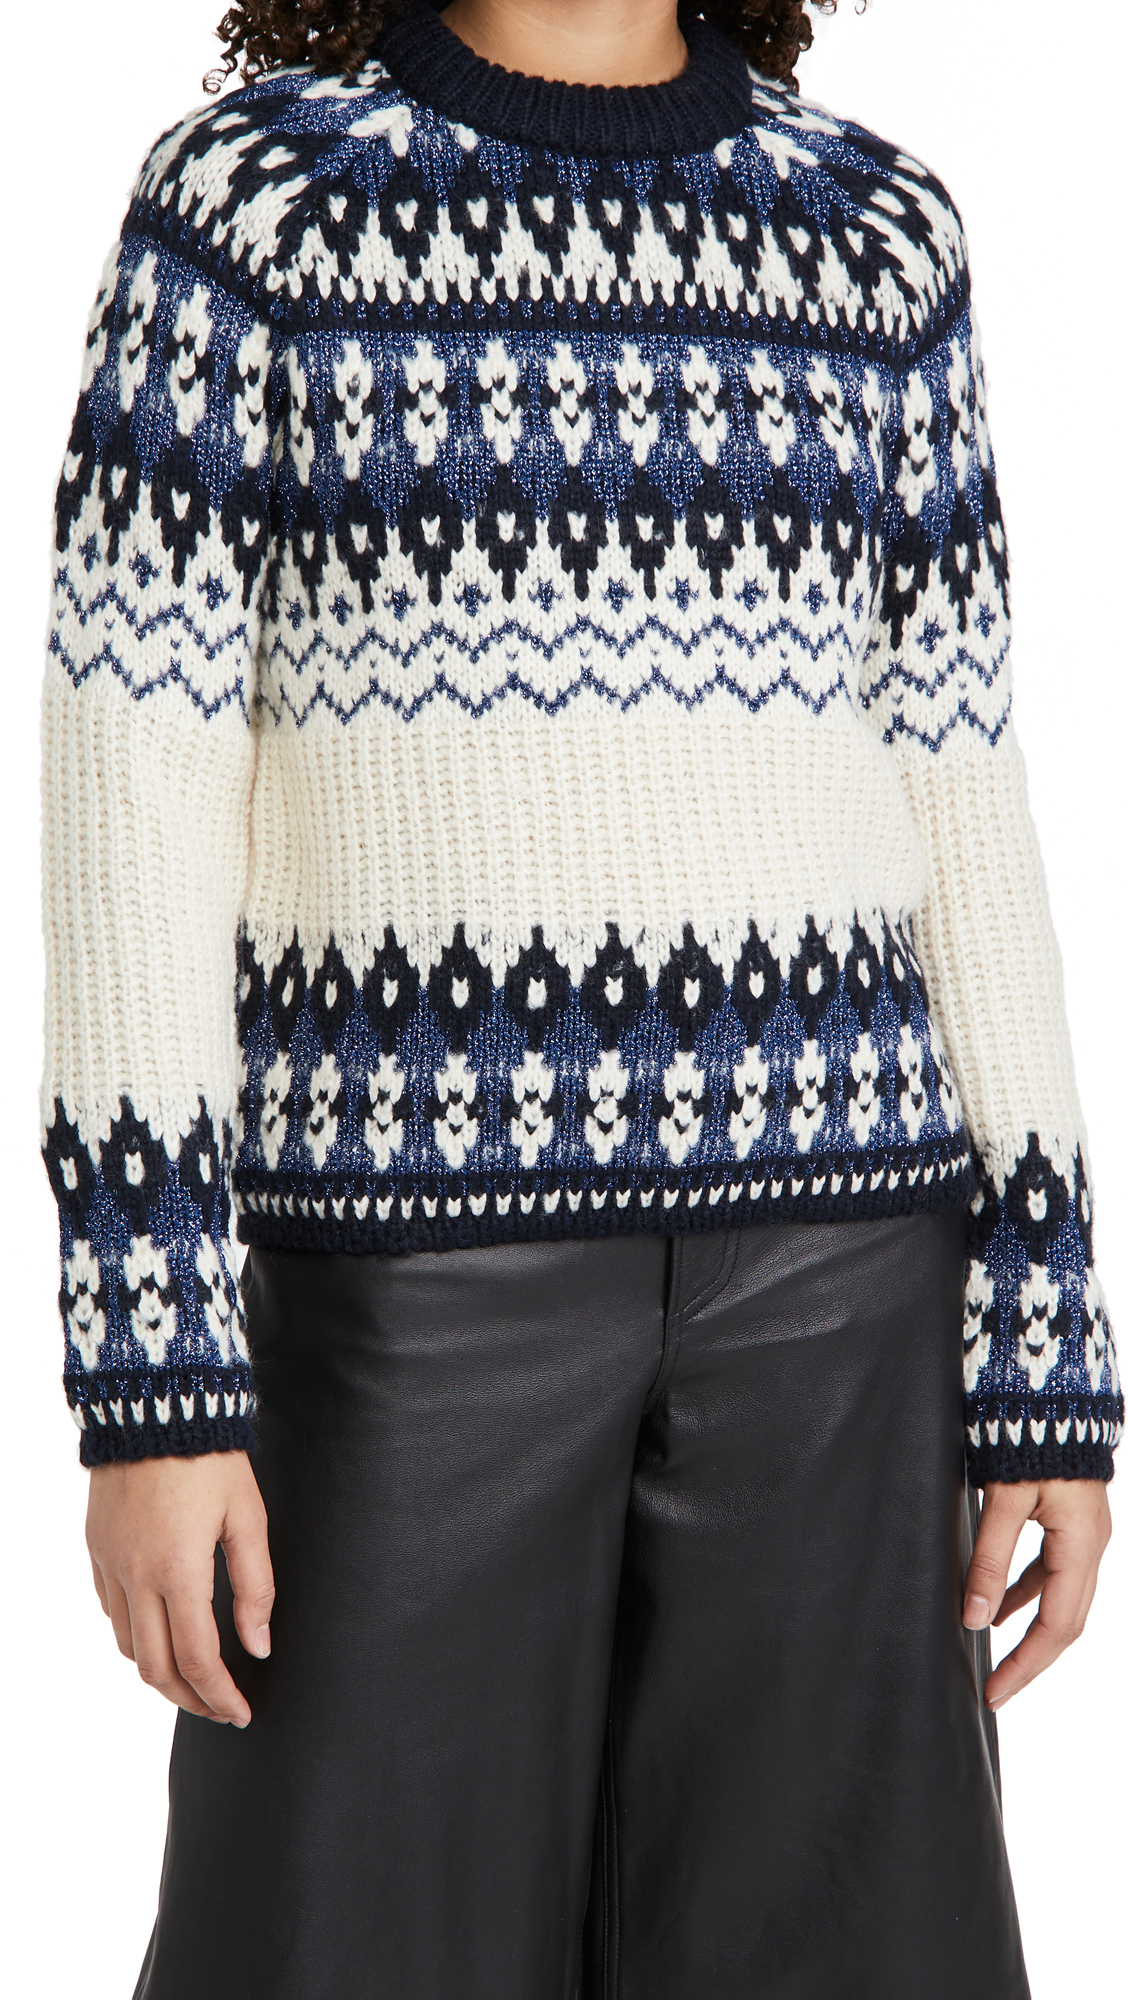 Scotch & Soda/Maison Scotch Fair Isle Crewneck Knit Sweater